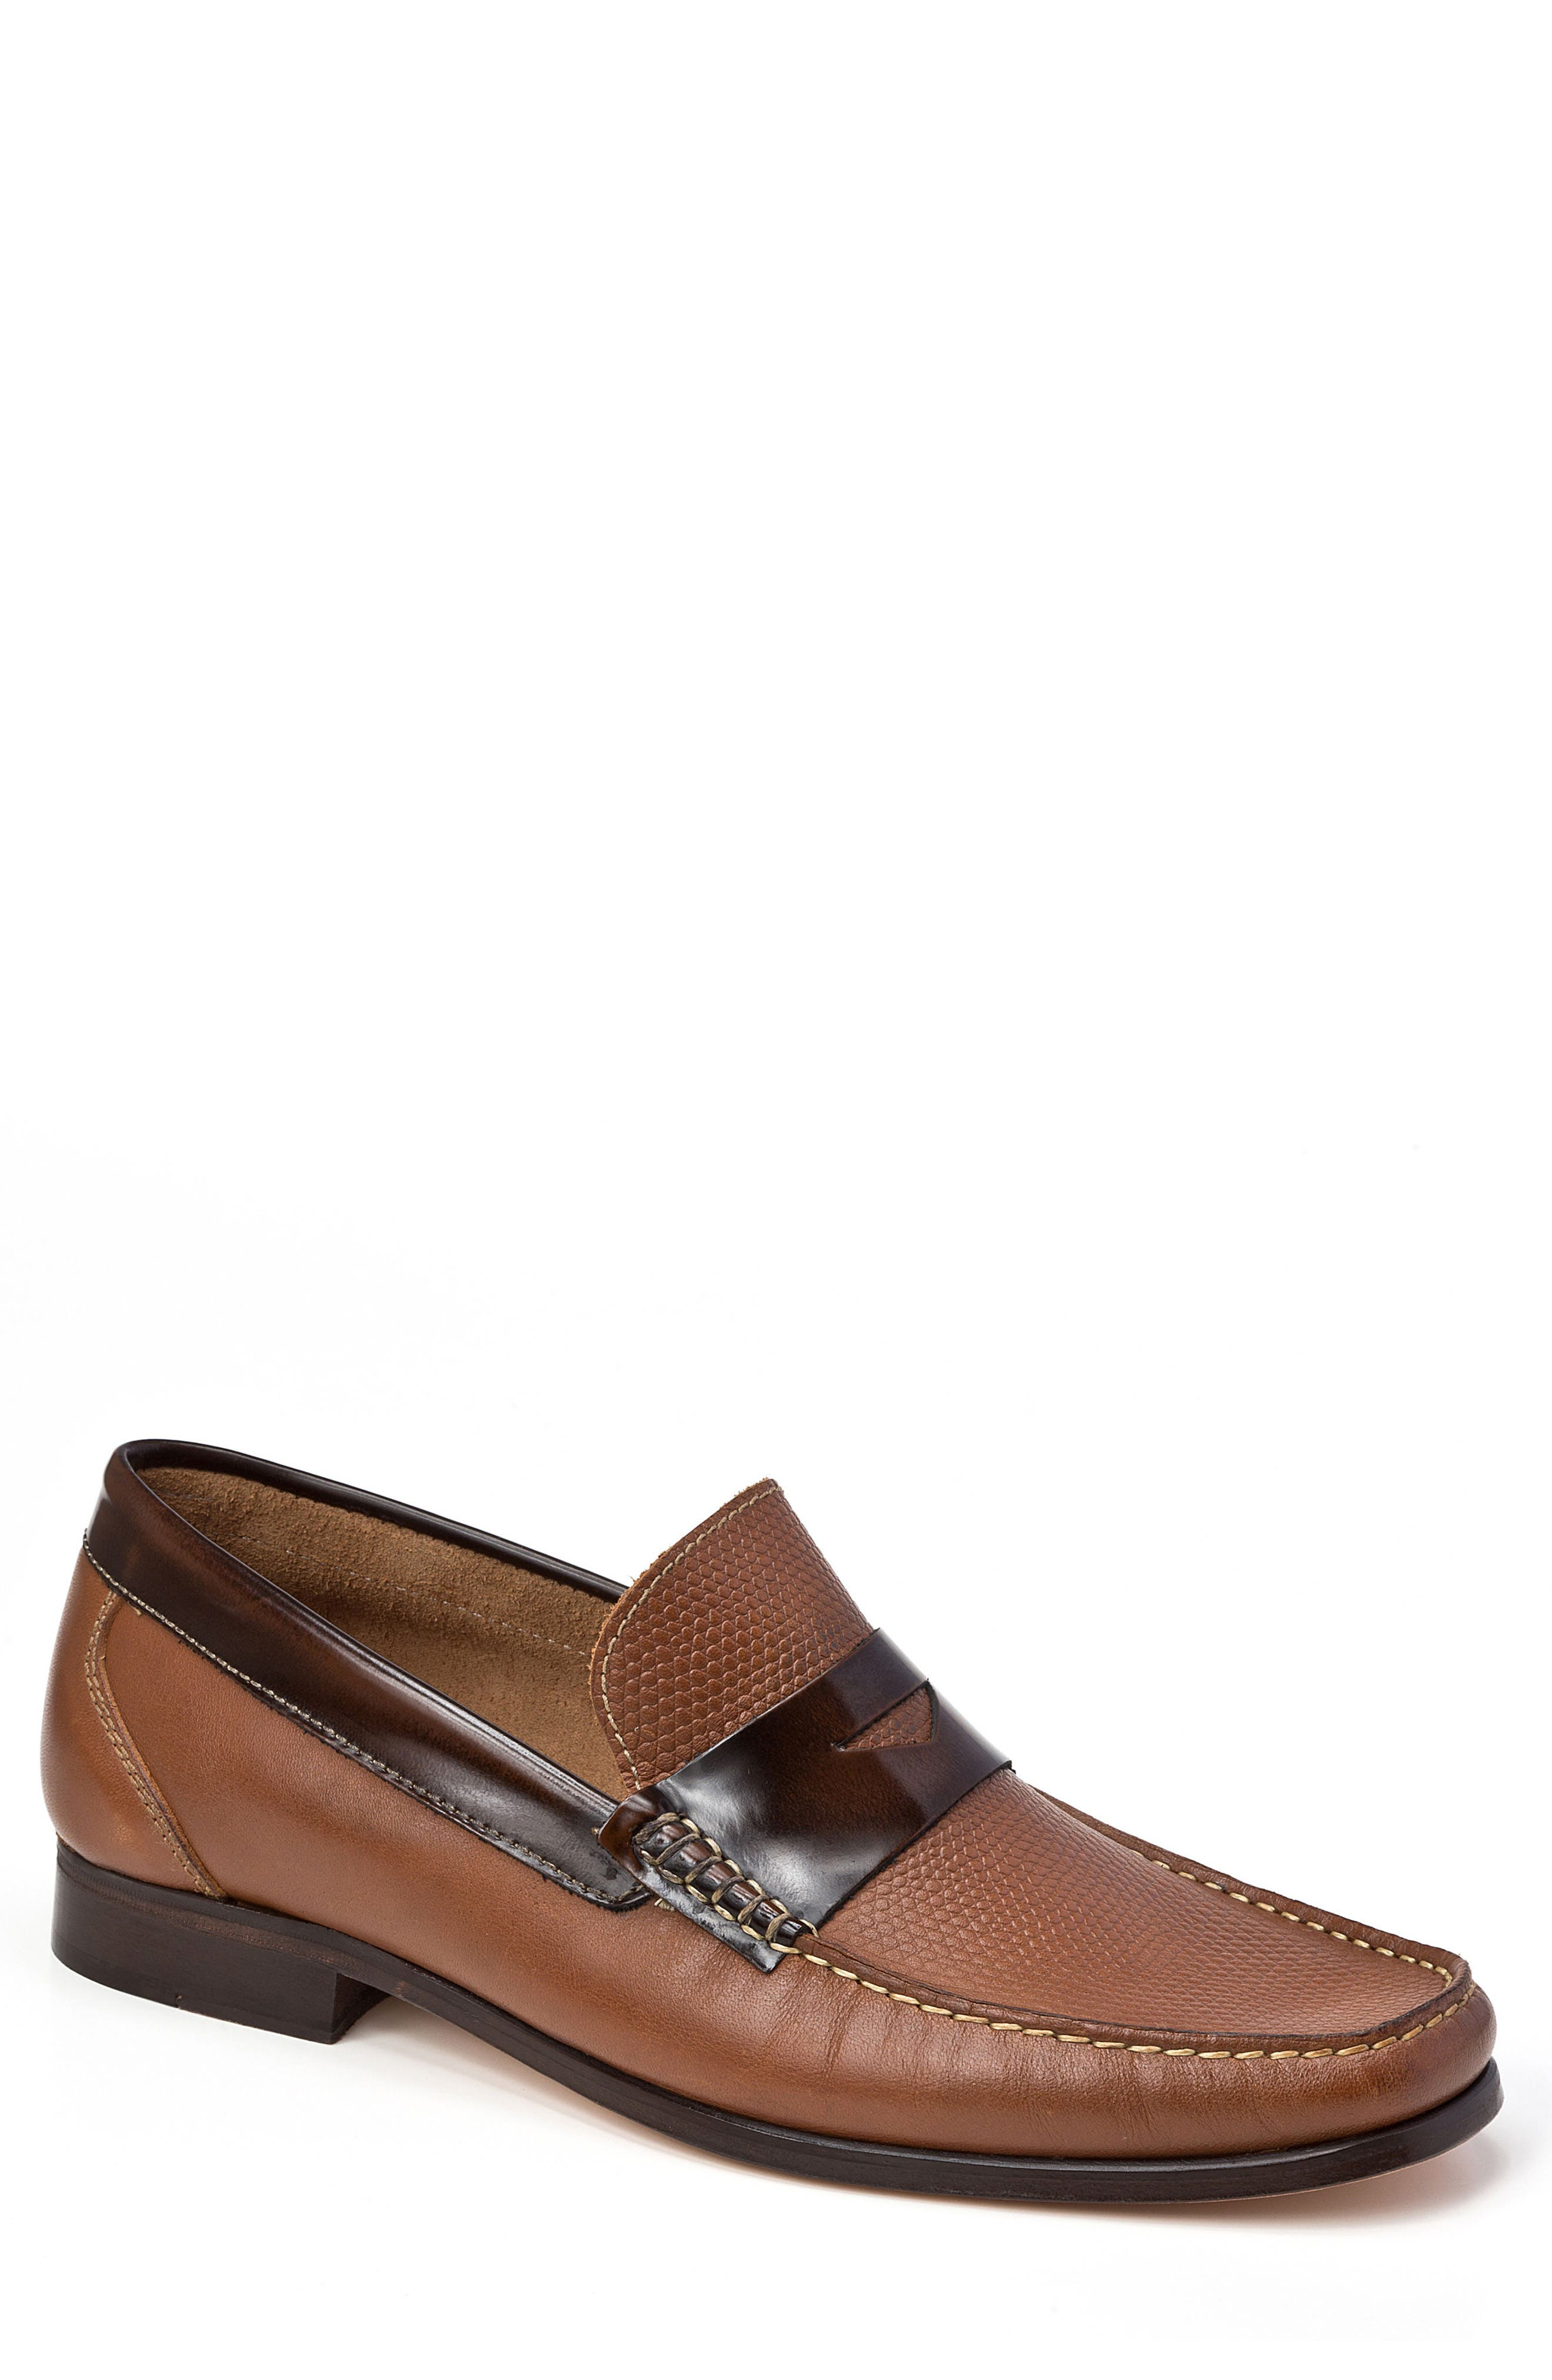 Bilbao Pebble Embossed Penny Loafer,                         Main,                         color, Tan